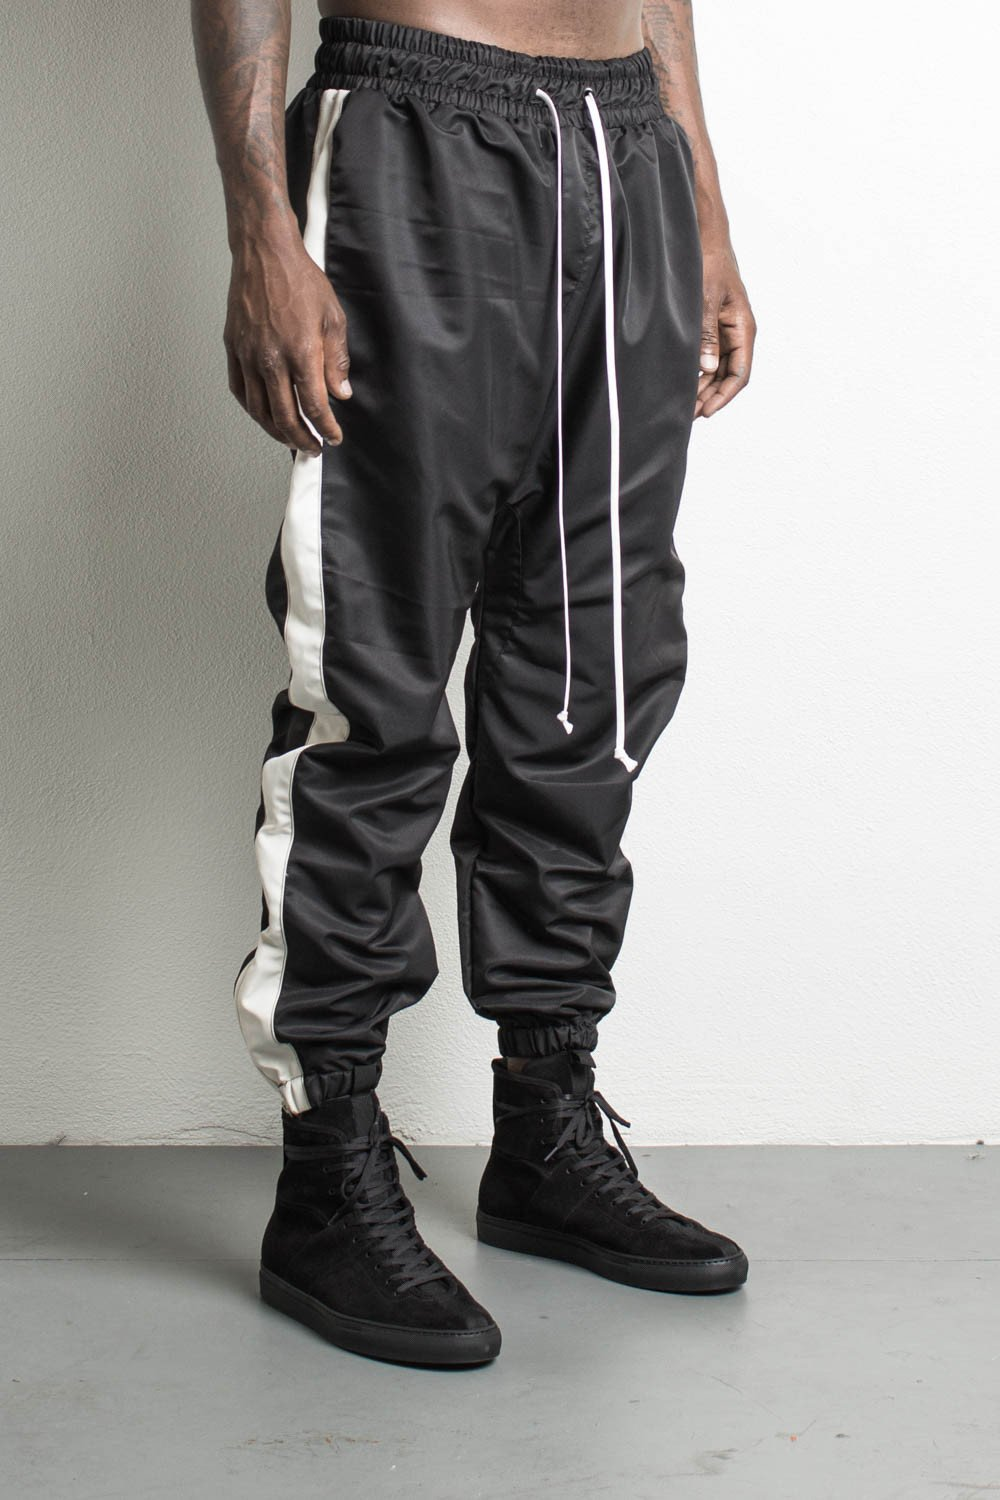 parachute track pants in black/natural by daniel patrick tzfiqlq